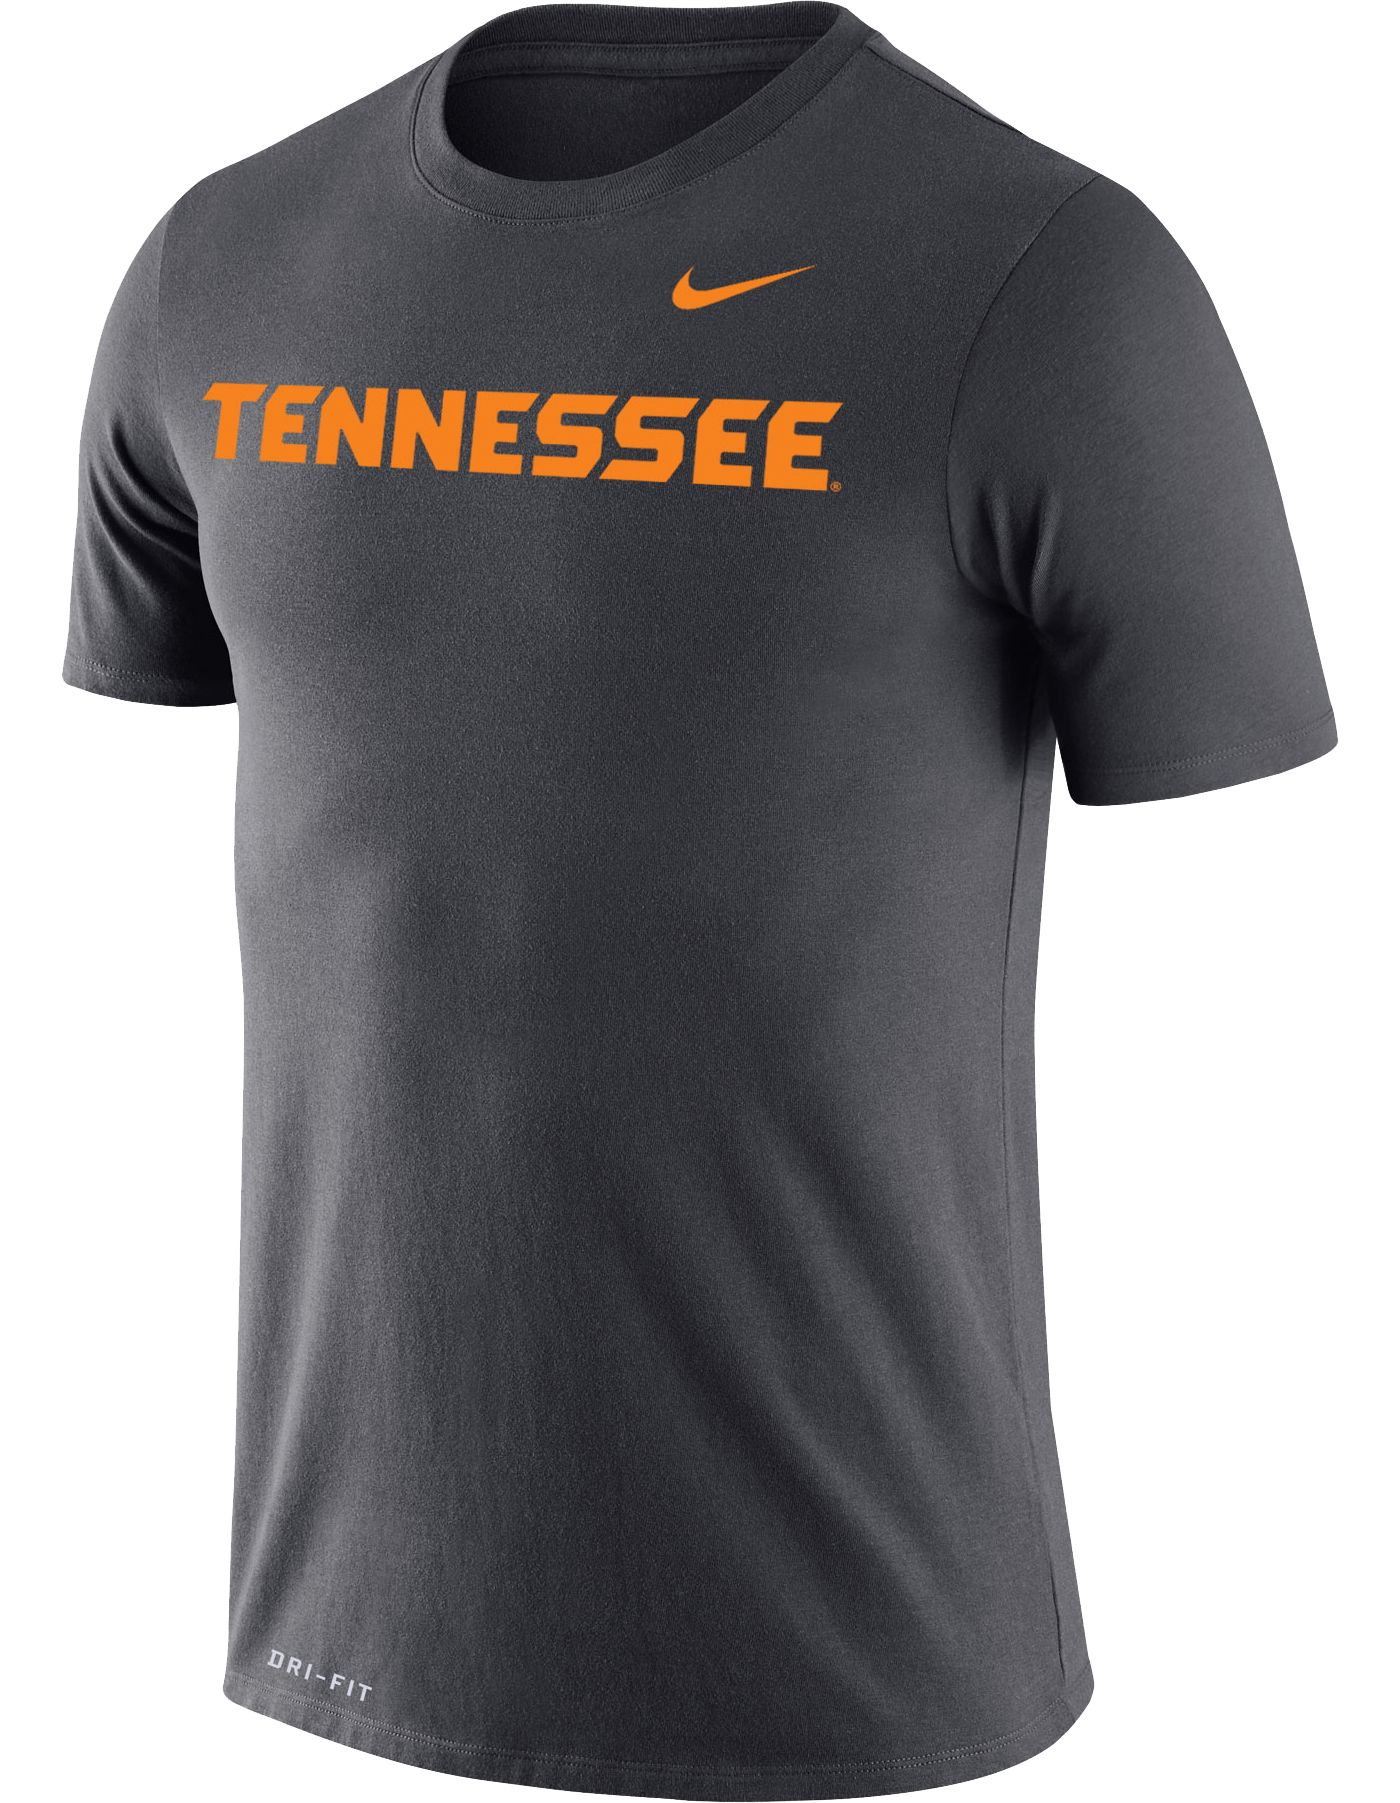 Nike Men's Tennessee Volunteers Grey Dri-FIT Cotton Word T-Shirt